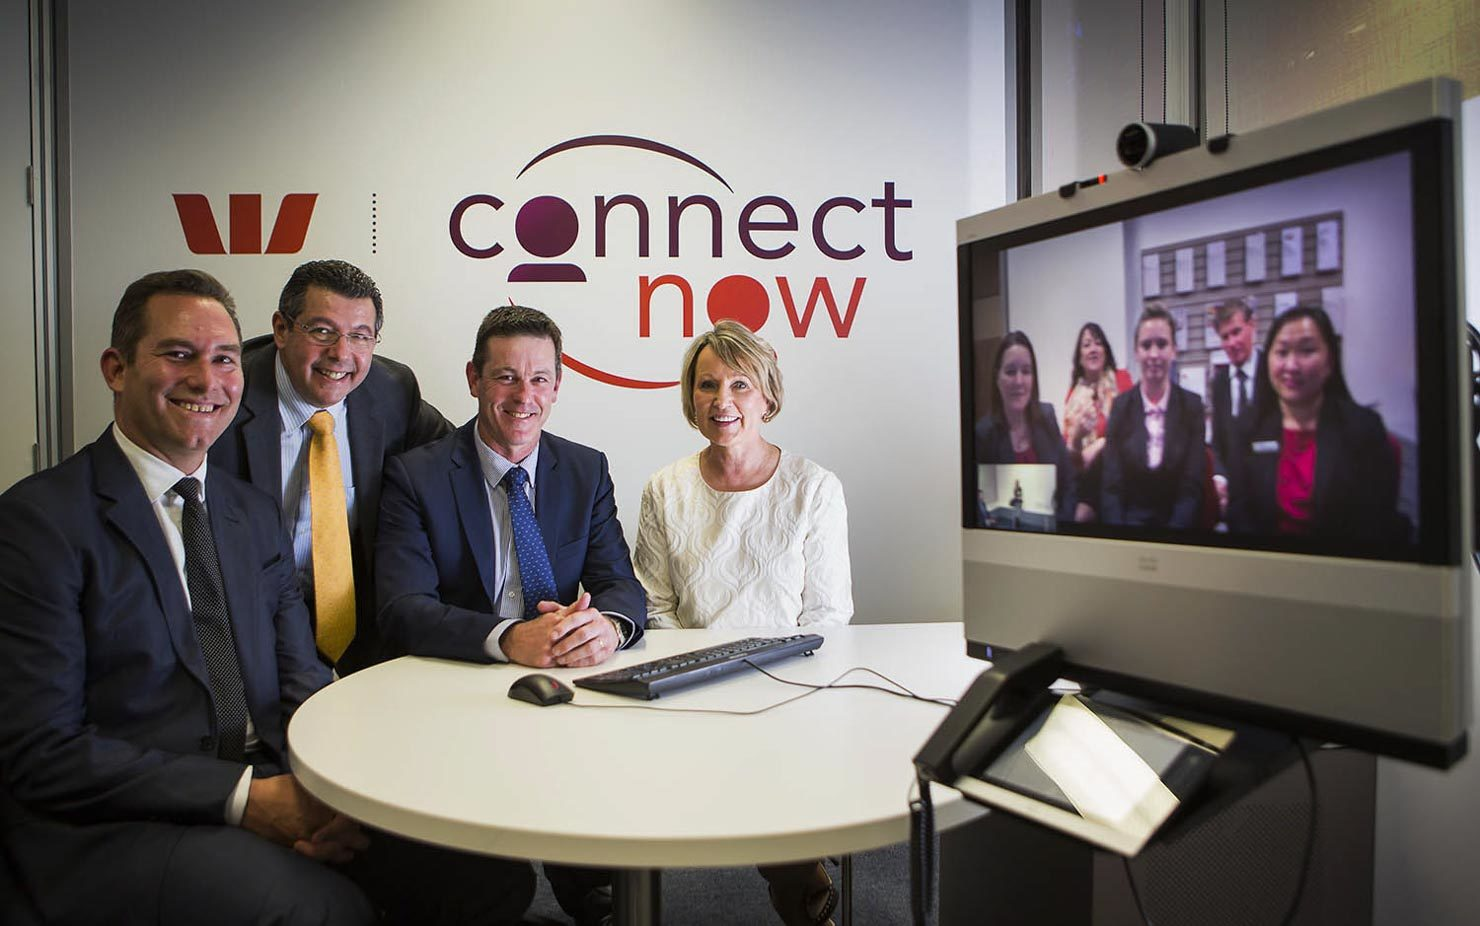 Westpac connect now launch